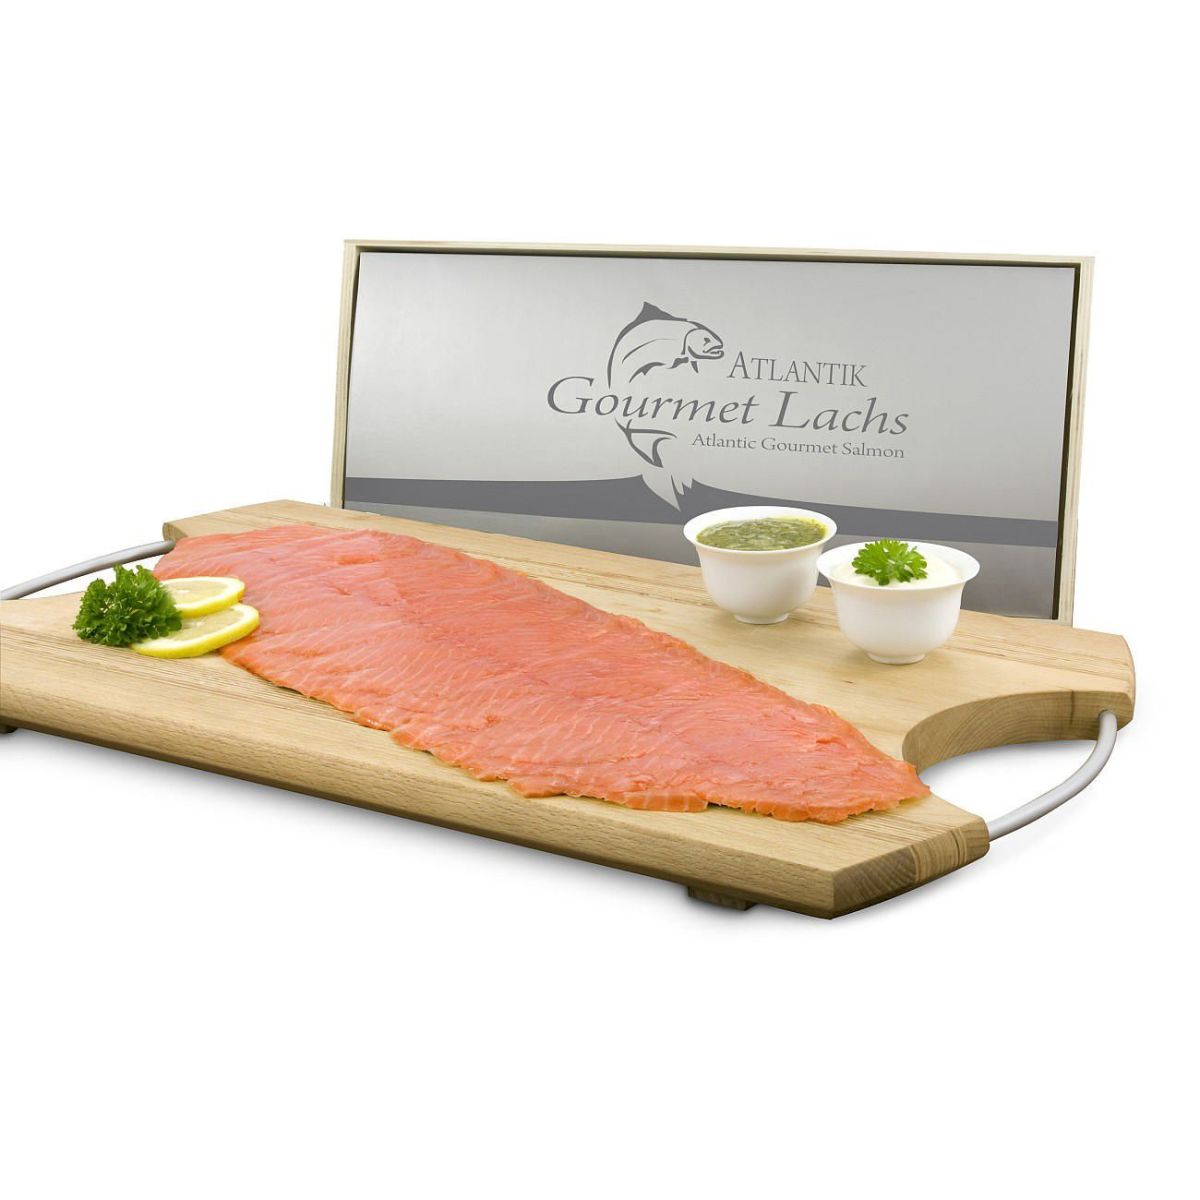 lachspr sent 39 gourmet 39 300g lachs 50g meerrettich 50g senf dill sauce einfach geschenke. Black Bedroom Furniture Sets. Home Design Ideas